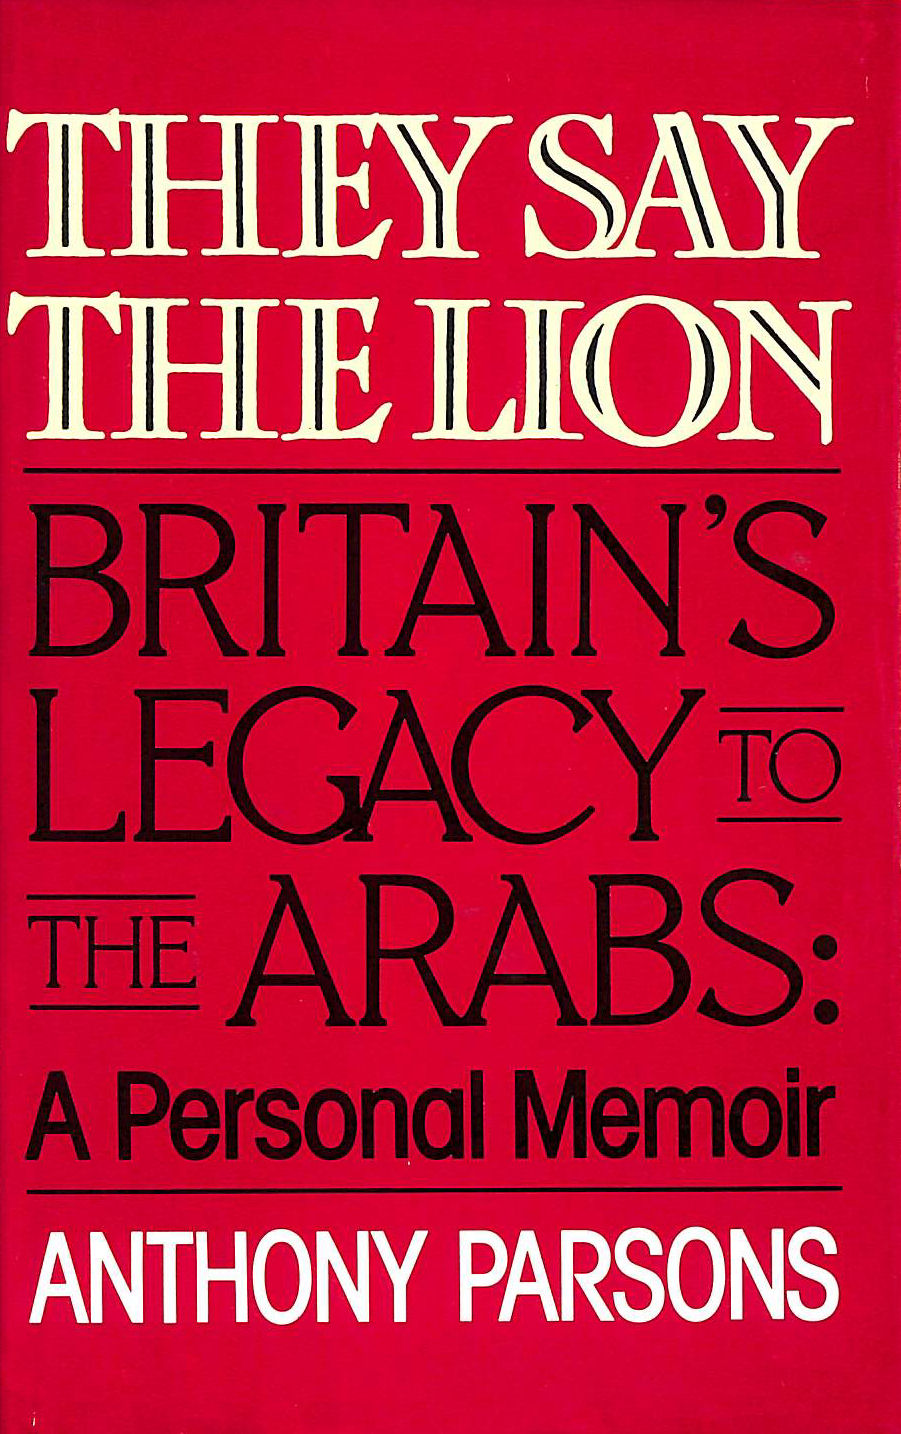 Image for They Say The Lion: Britain's Legacy To The Arabs - A Personal Memoir